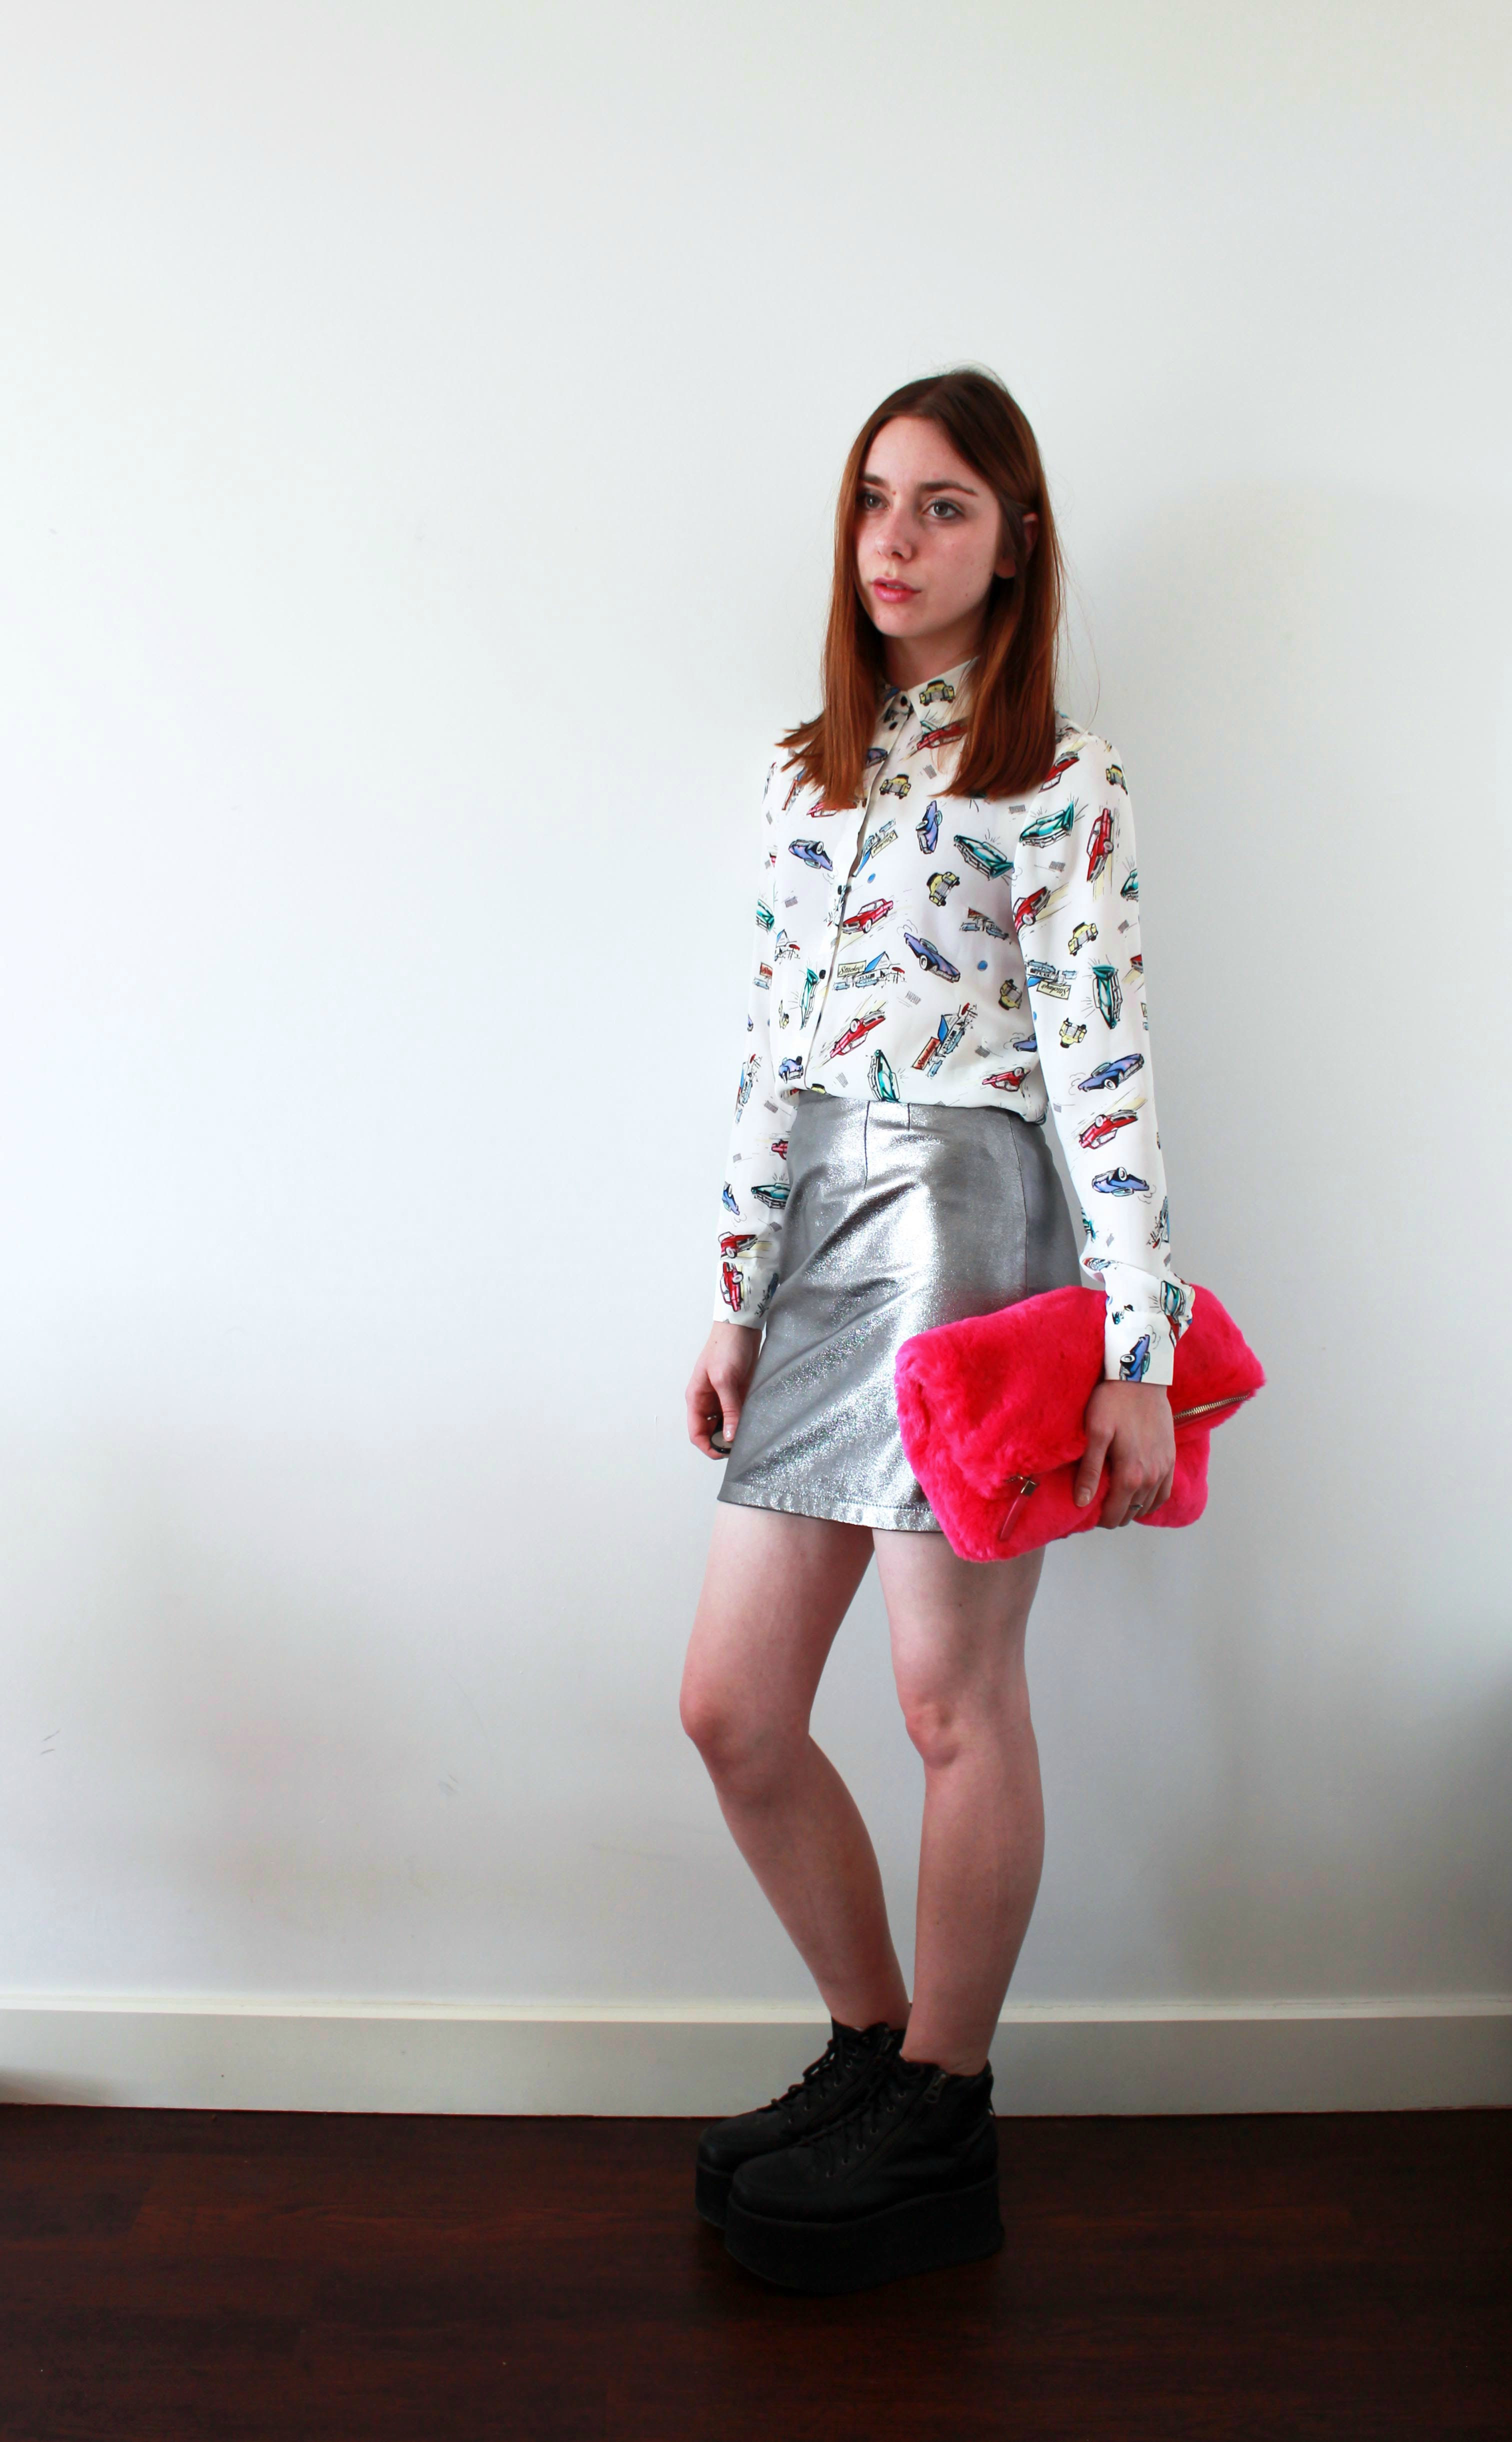 Metallic skirt, printed shirt, platforms and fur clutch outfit